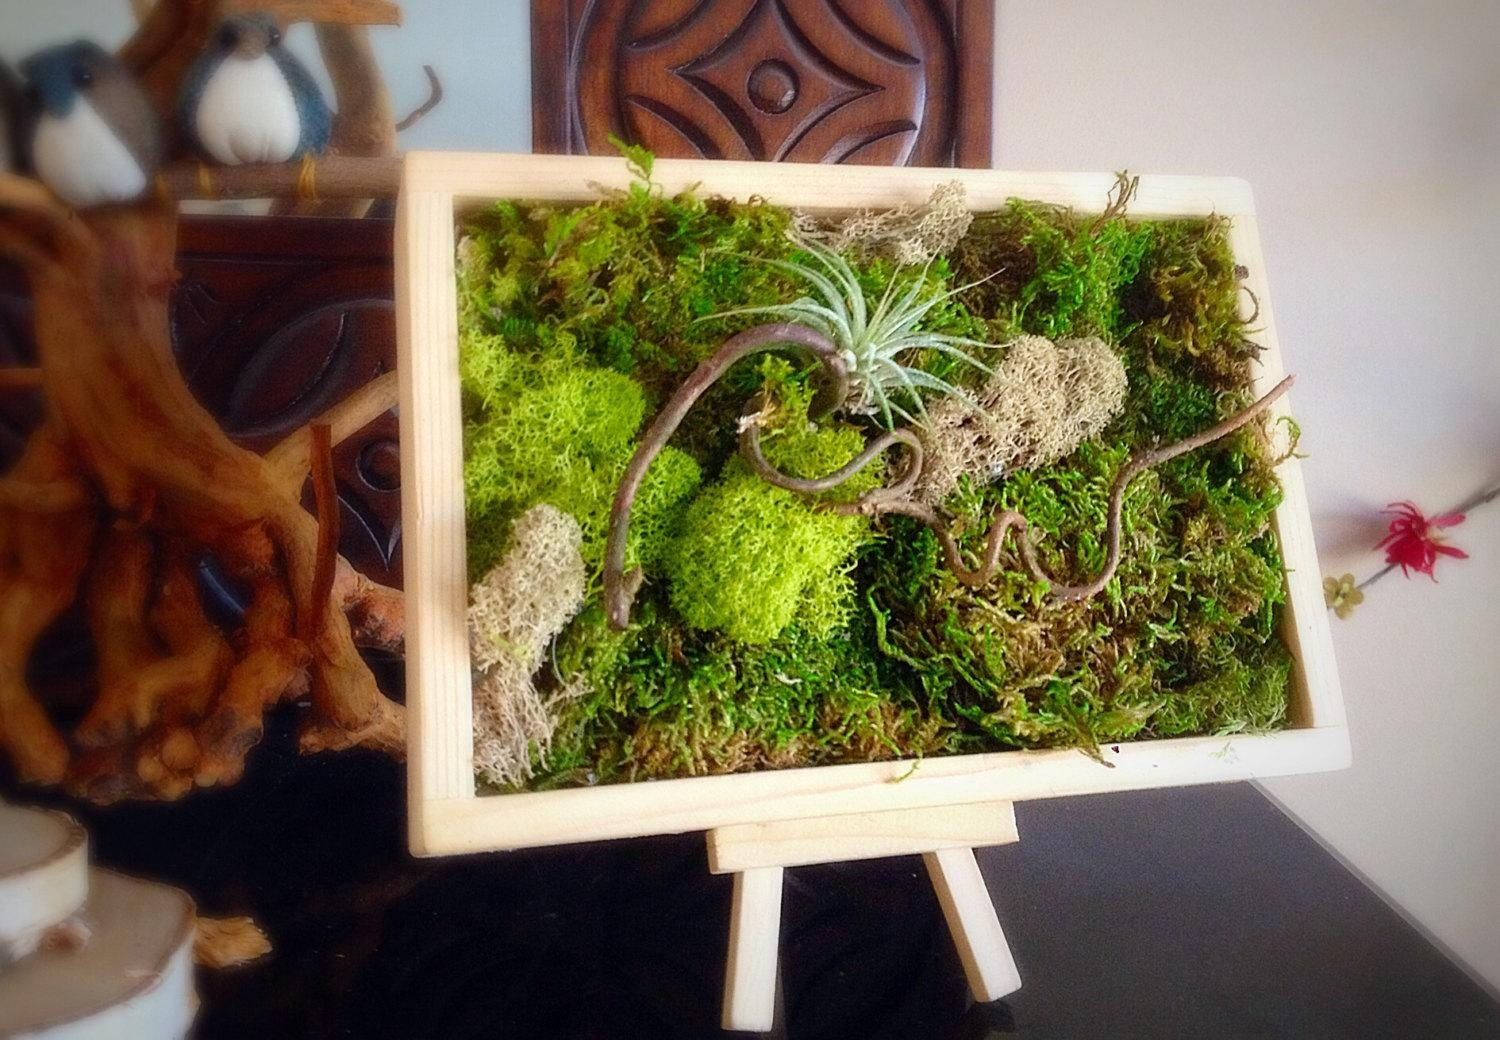 Moss Art Wall/ Hanging Garden/ Vertical Garden/ Living Wall/ Within Floral & Plant Wall Art (View 10 of 20)